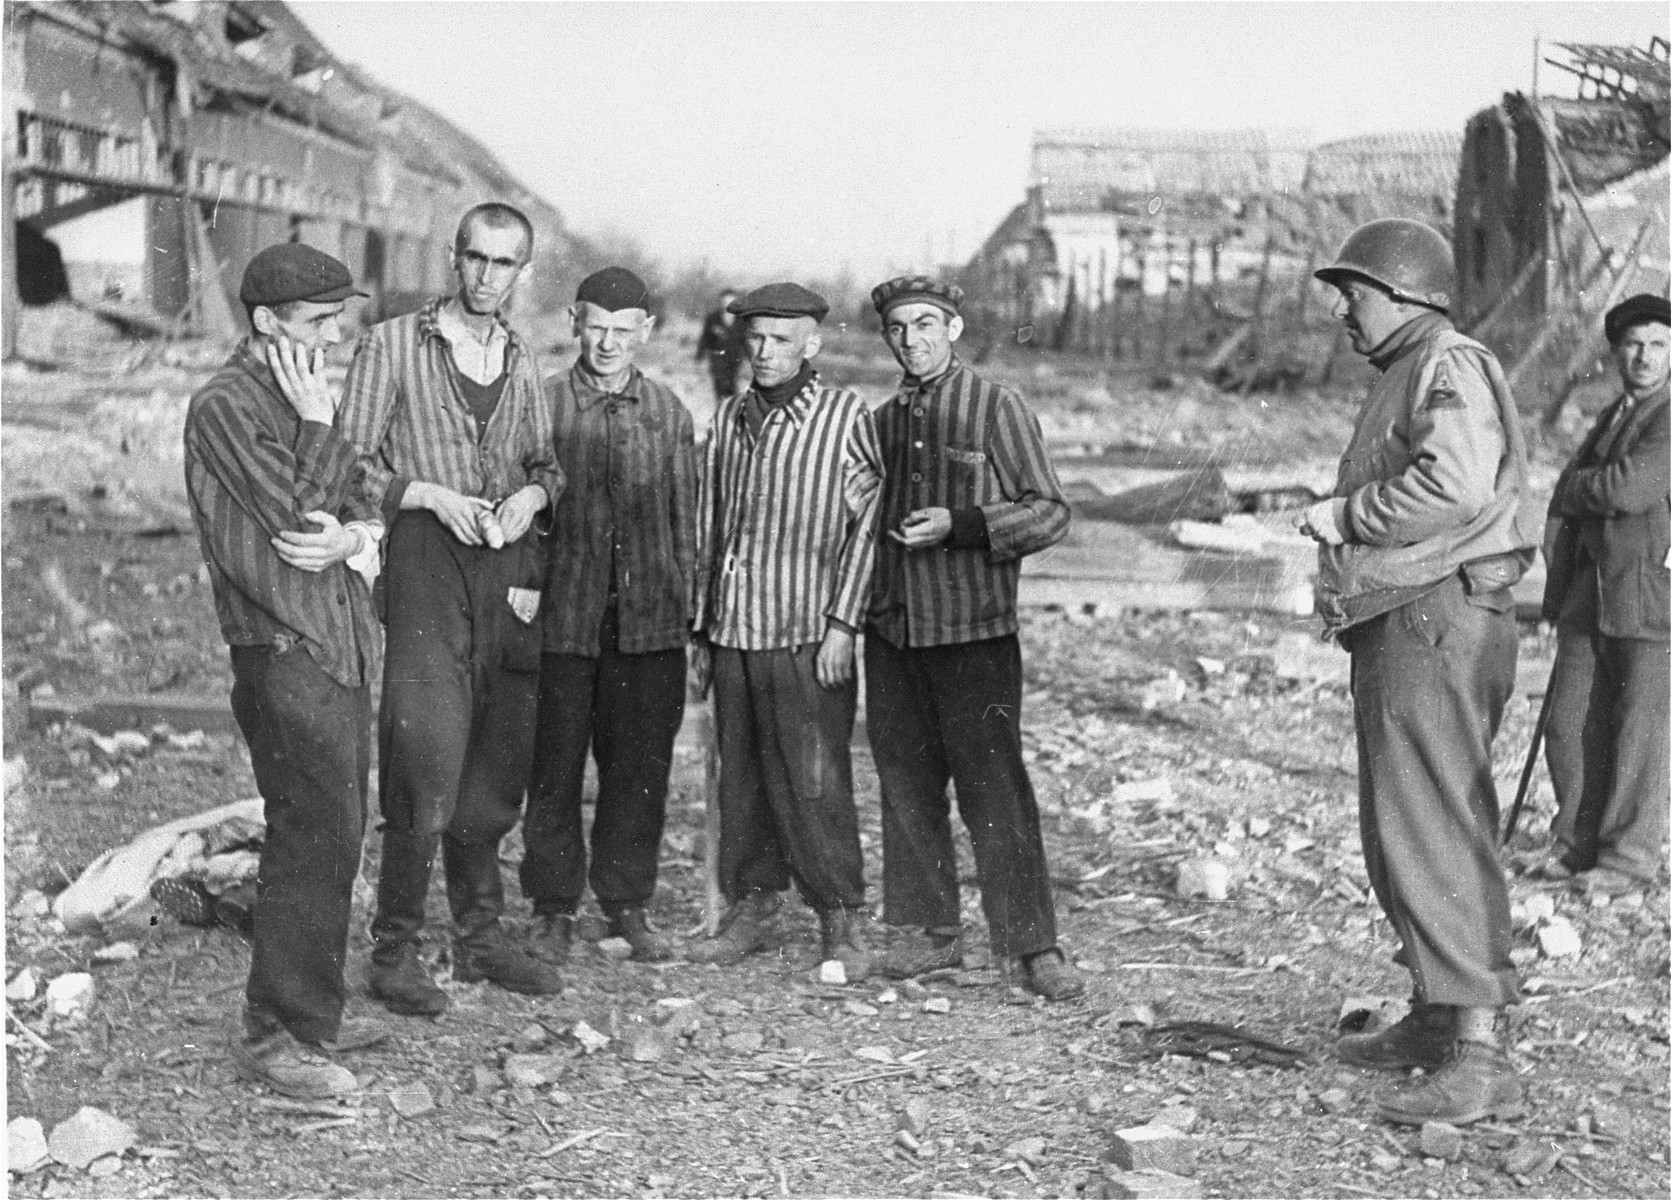 An American soldier speaks outside with five survivors in the Nordhausen concentration camp.